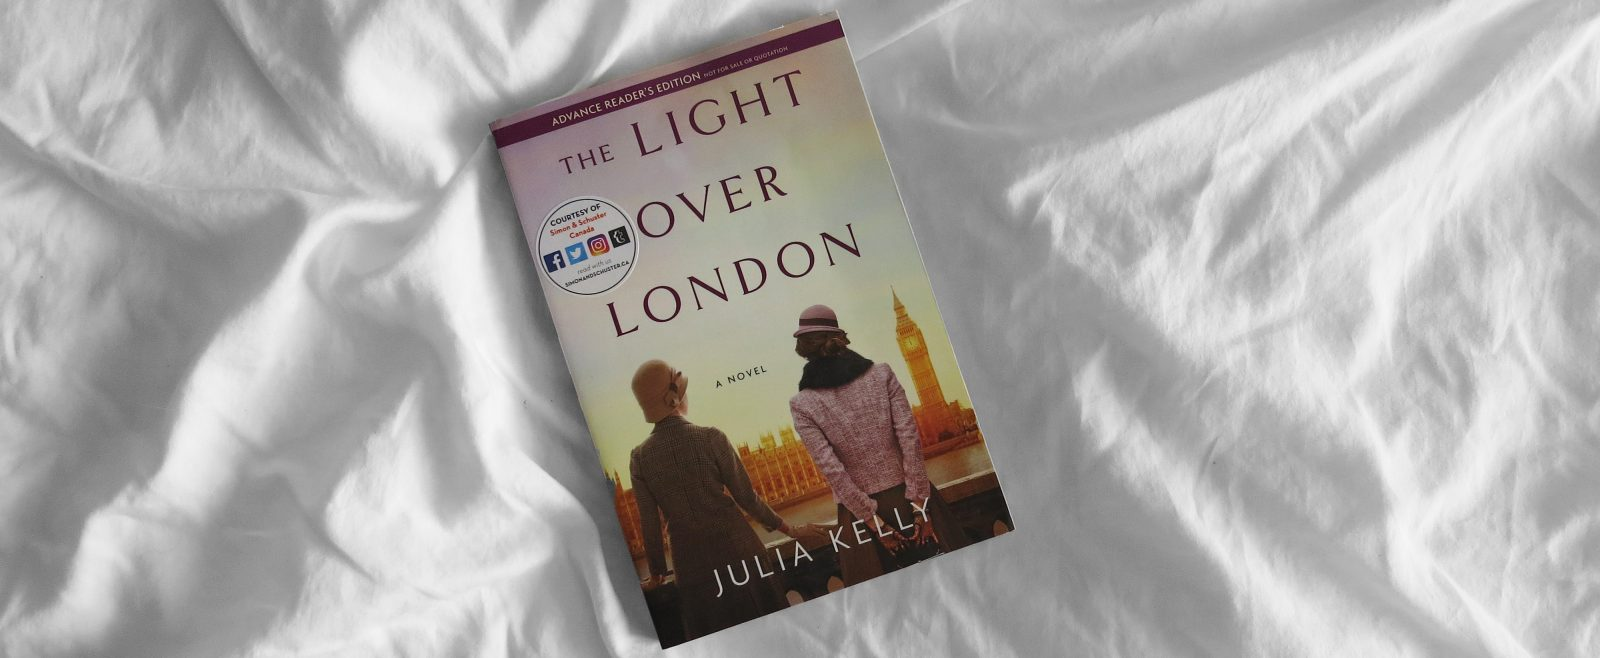 ARC Review | The Light Over London by Julia Kelly